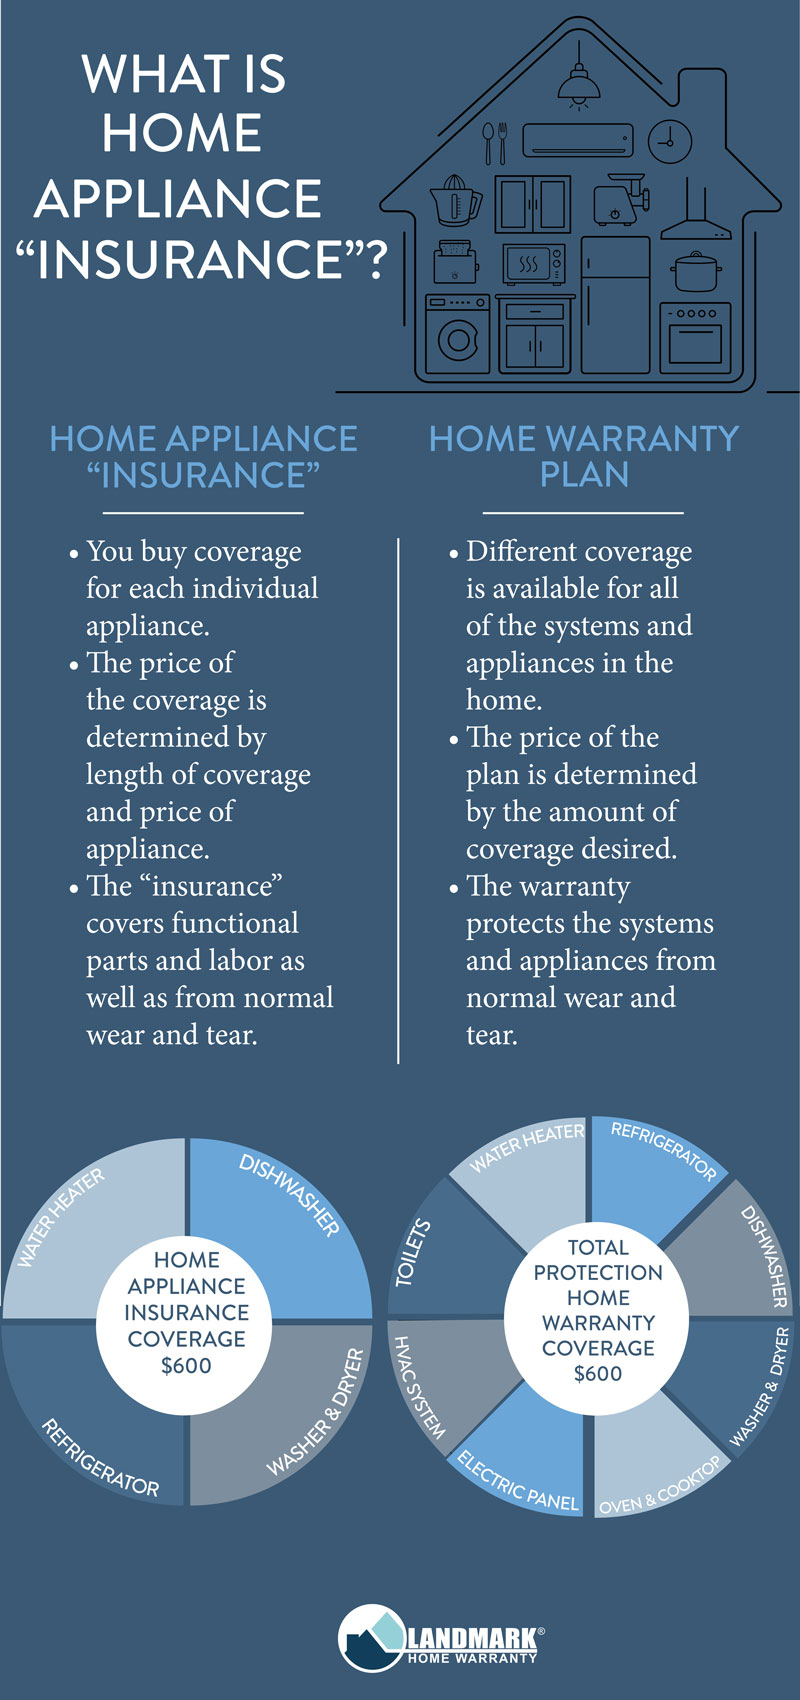 What Is Home Appliance Insurance